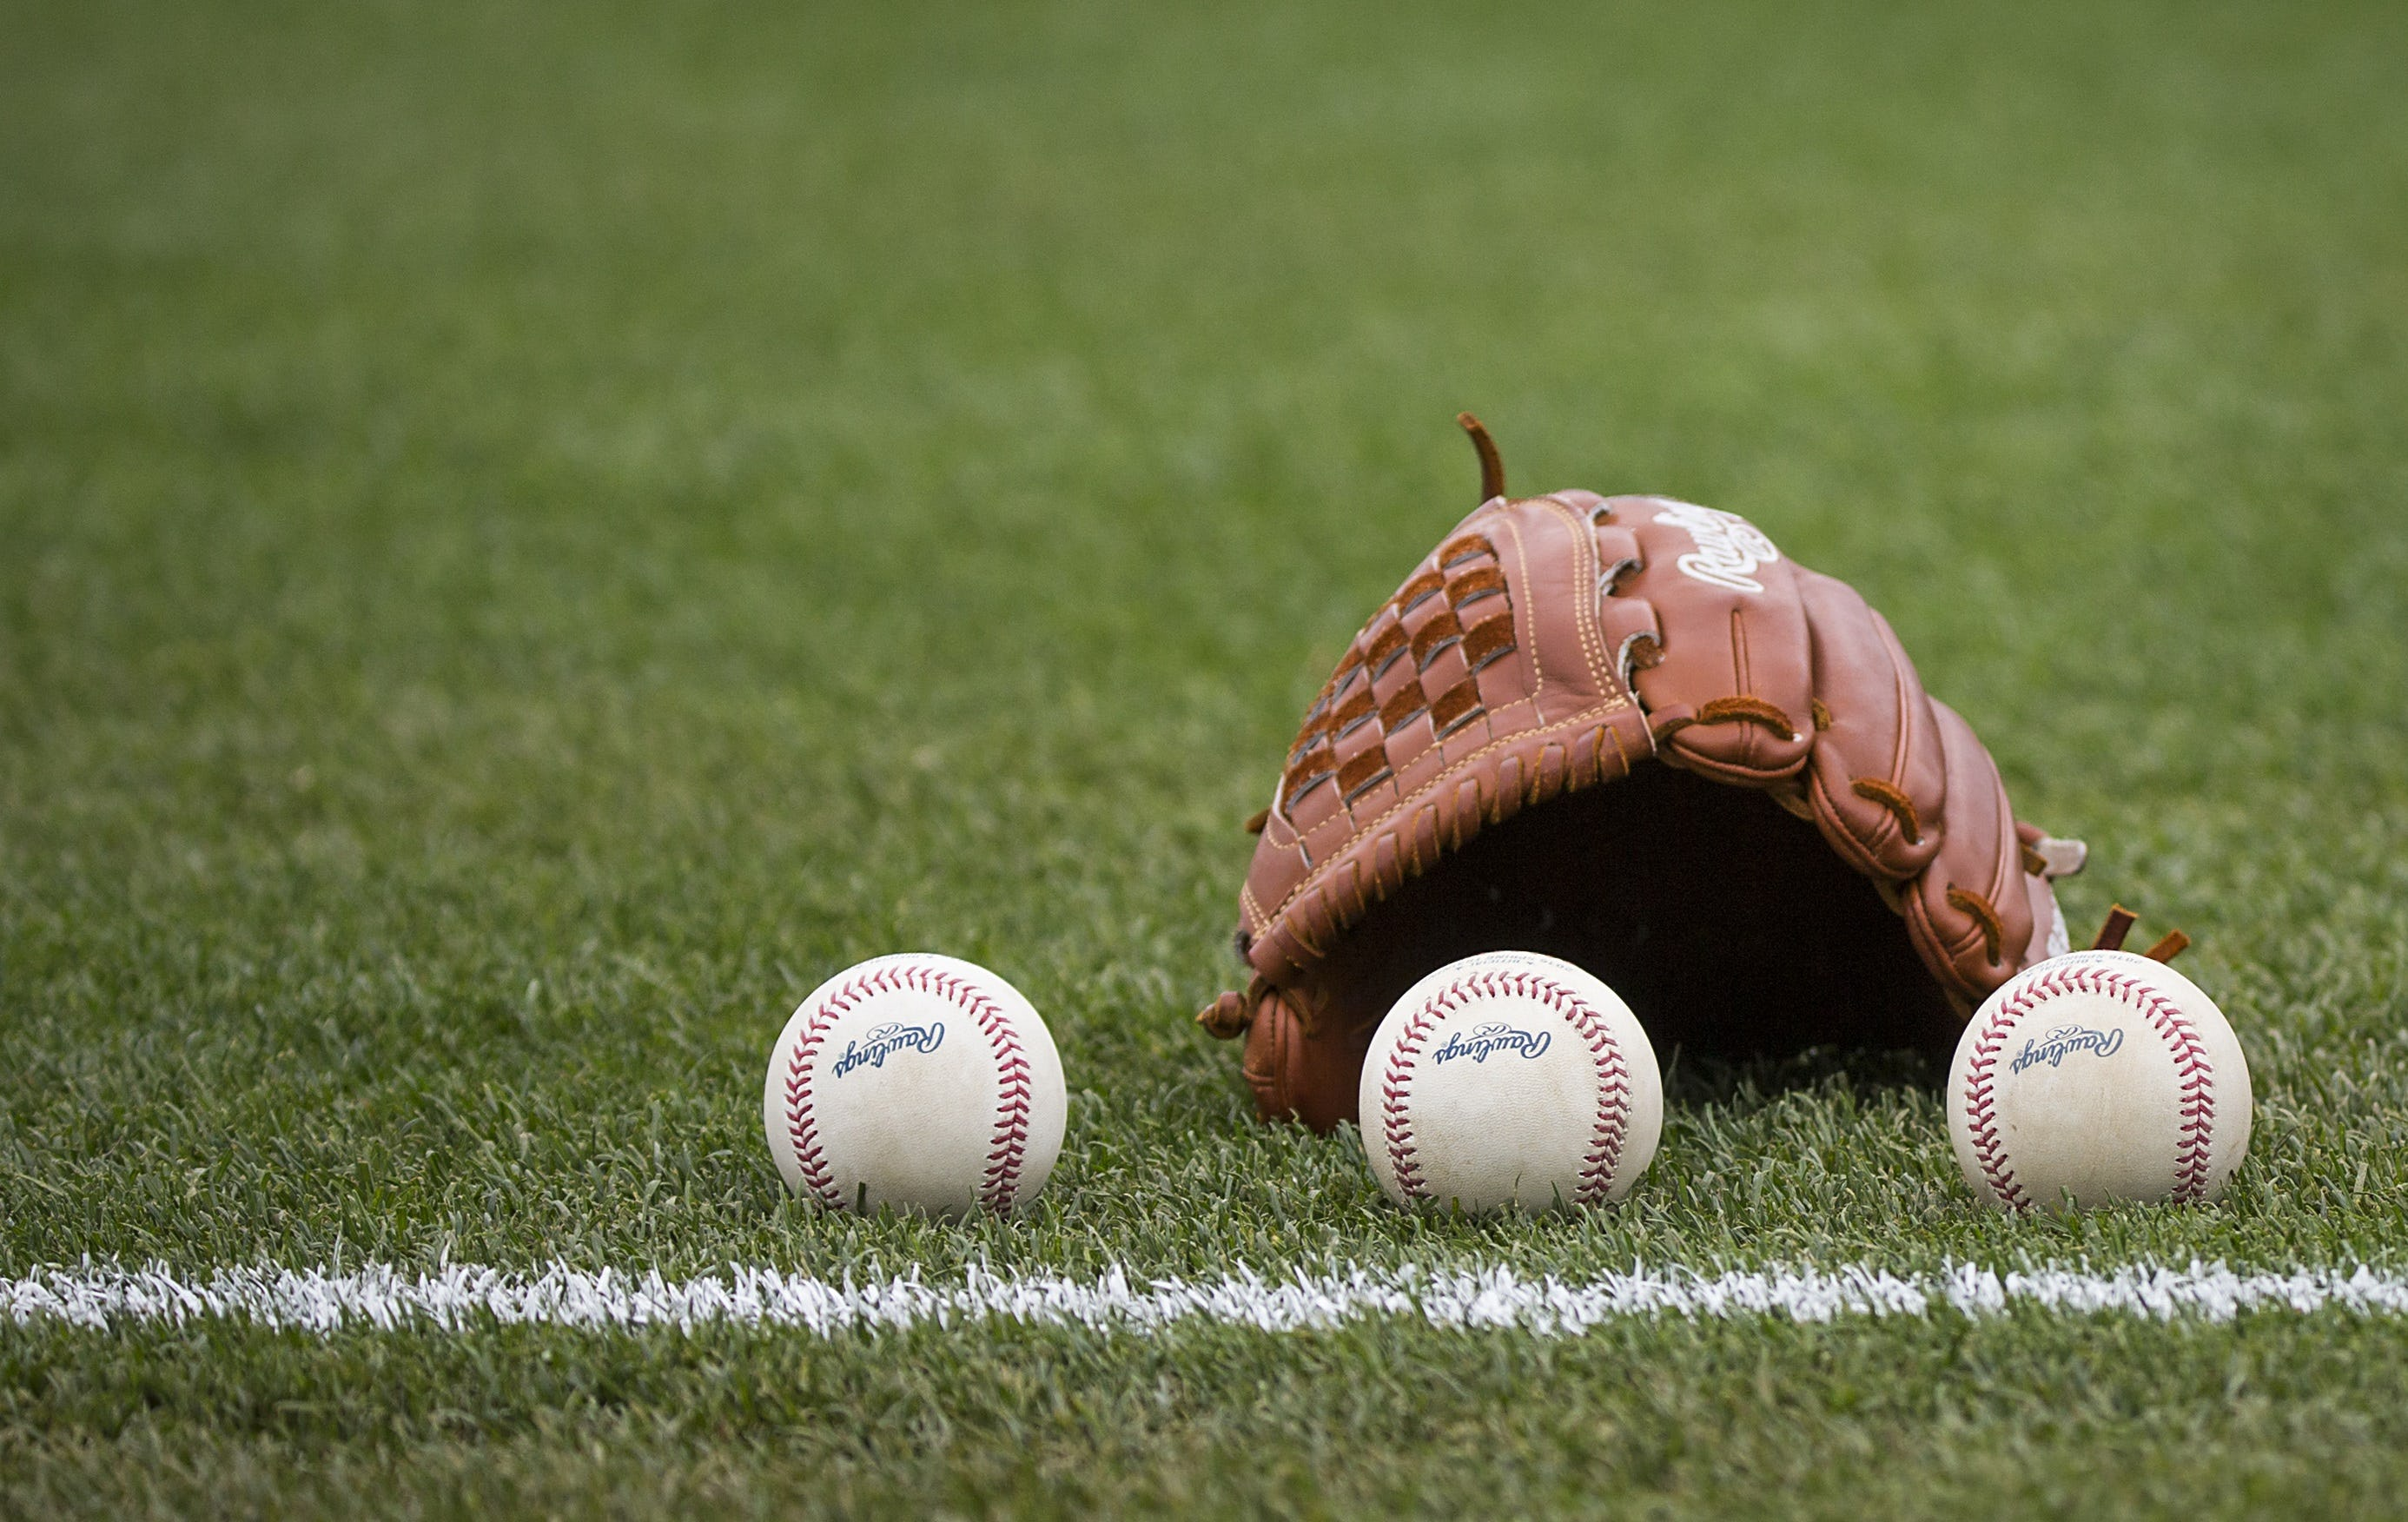 Rangers add former fourth-round pick as depth for minor-league system